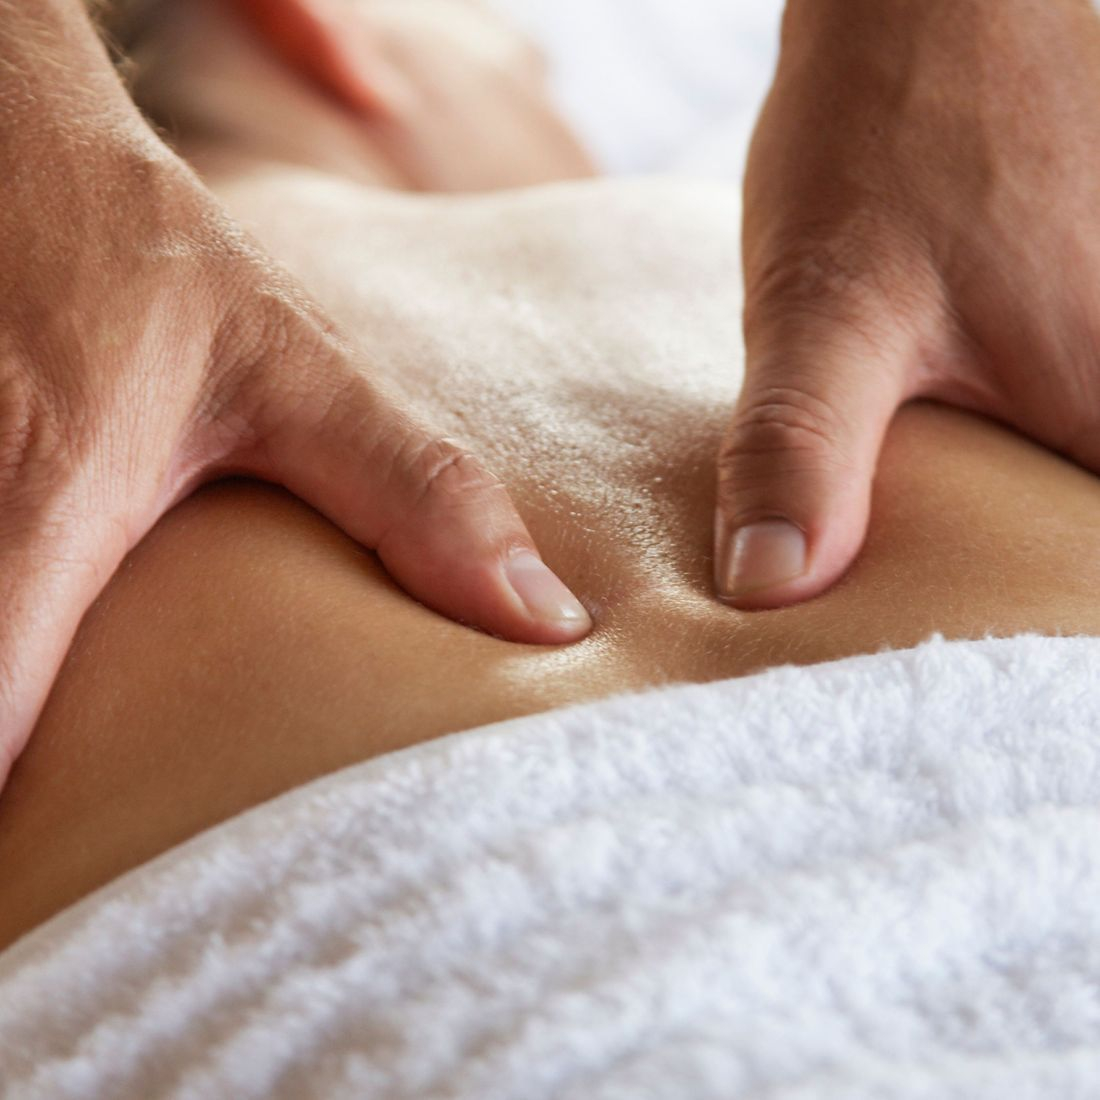 pain, rehabilitation, back pain, Portsmouth, physiotherapy, physio, sports injuries, accupuncture